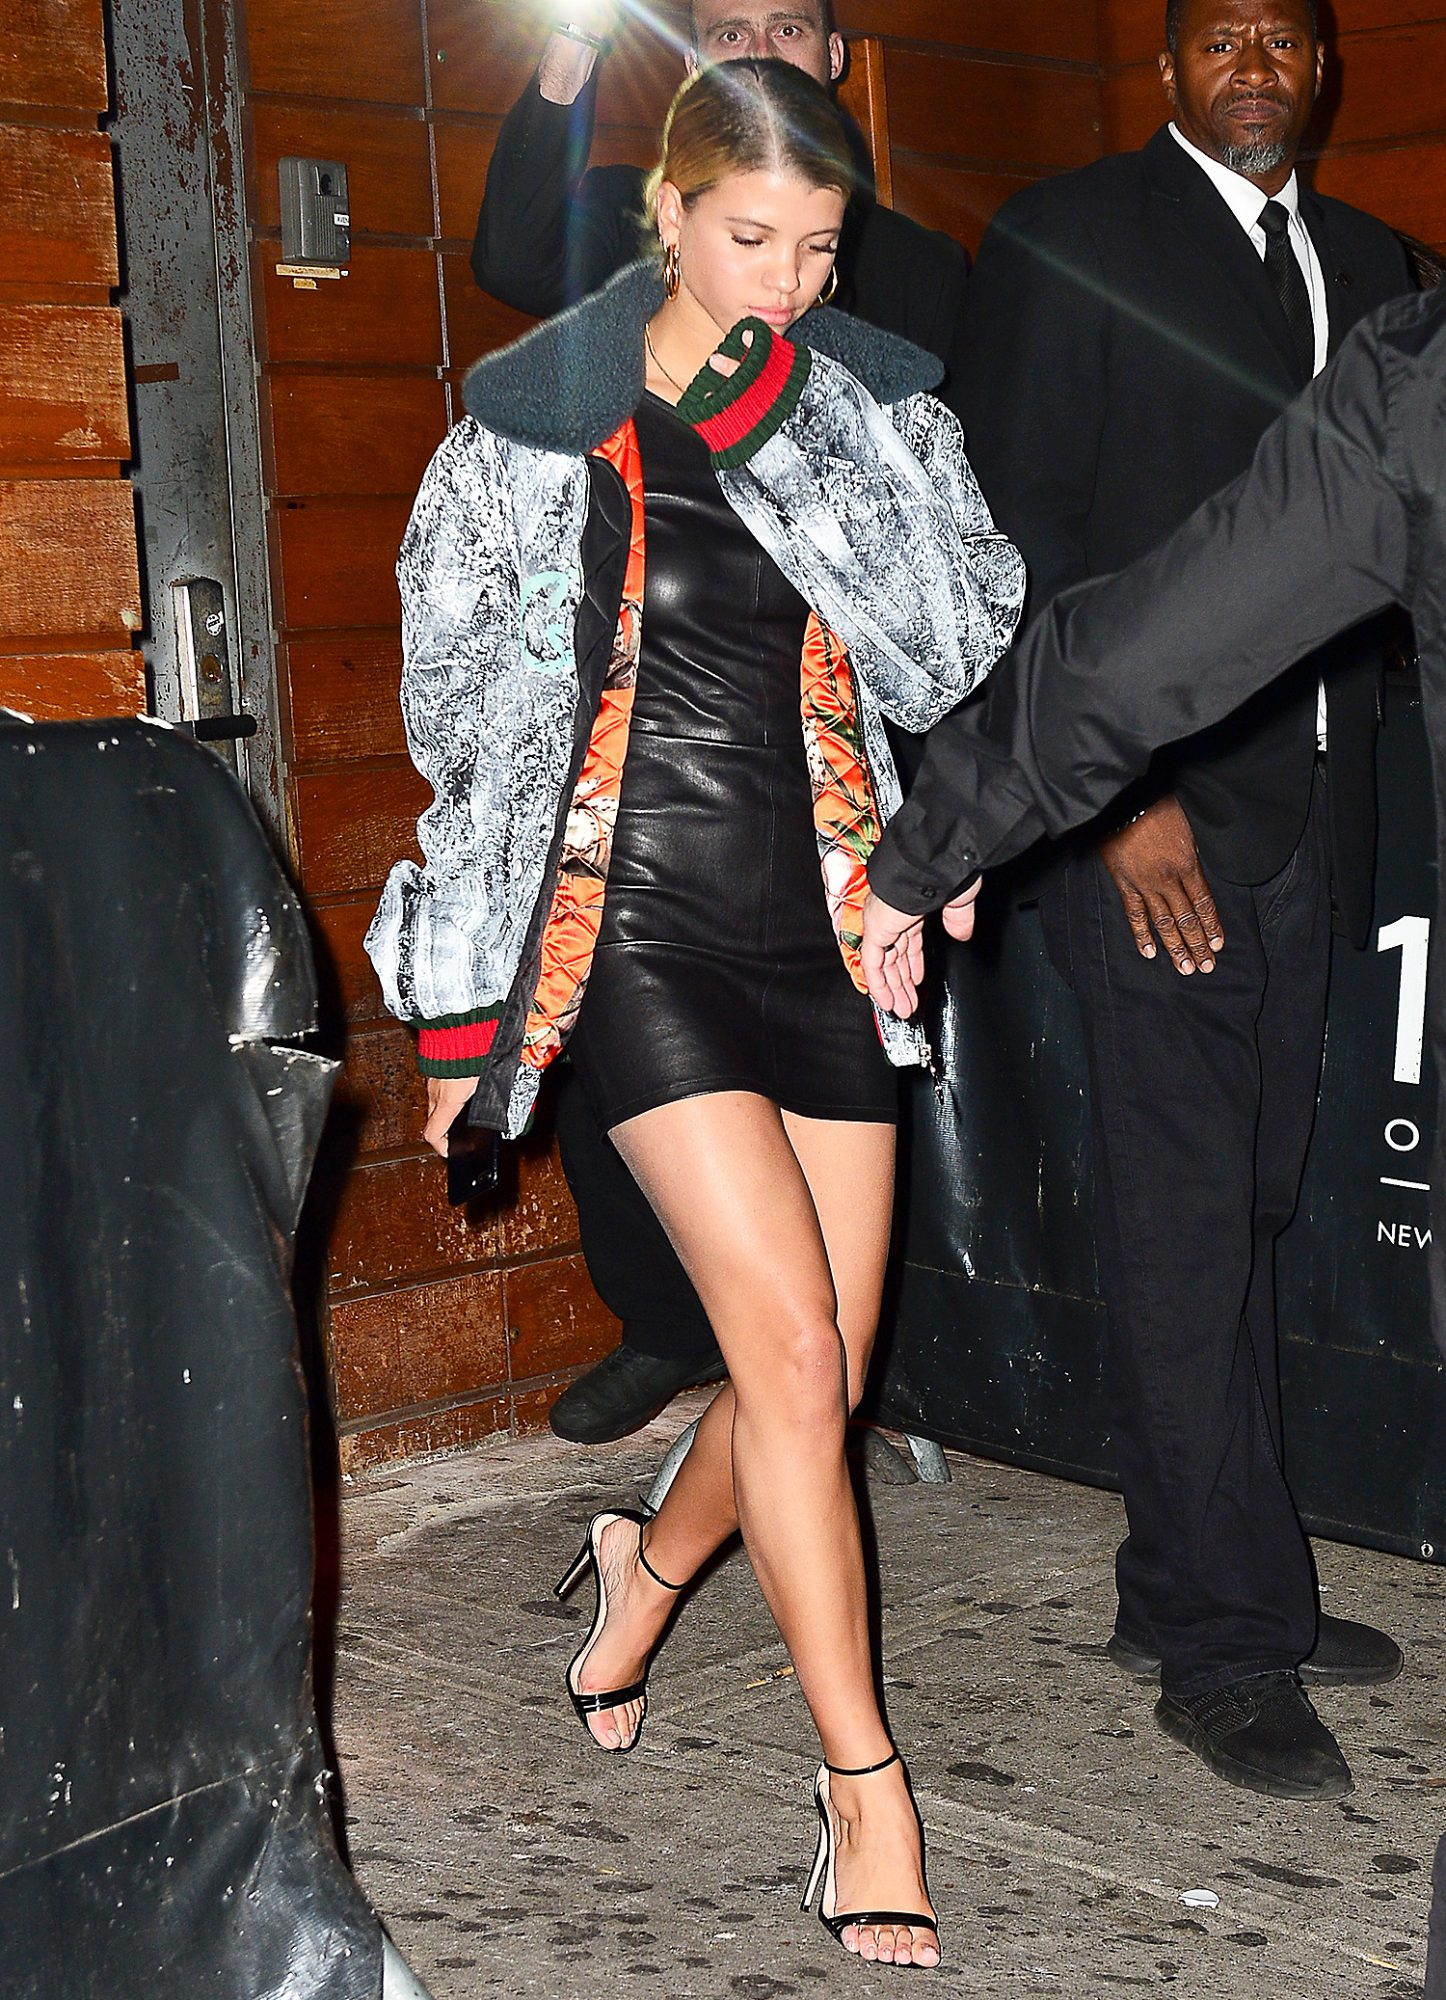 EXCLUSIVE: Scott Disick takes girlfriend Sofia Richie out for a night of clubbing till 4 am in New York City